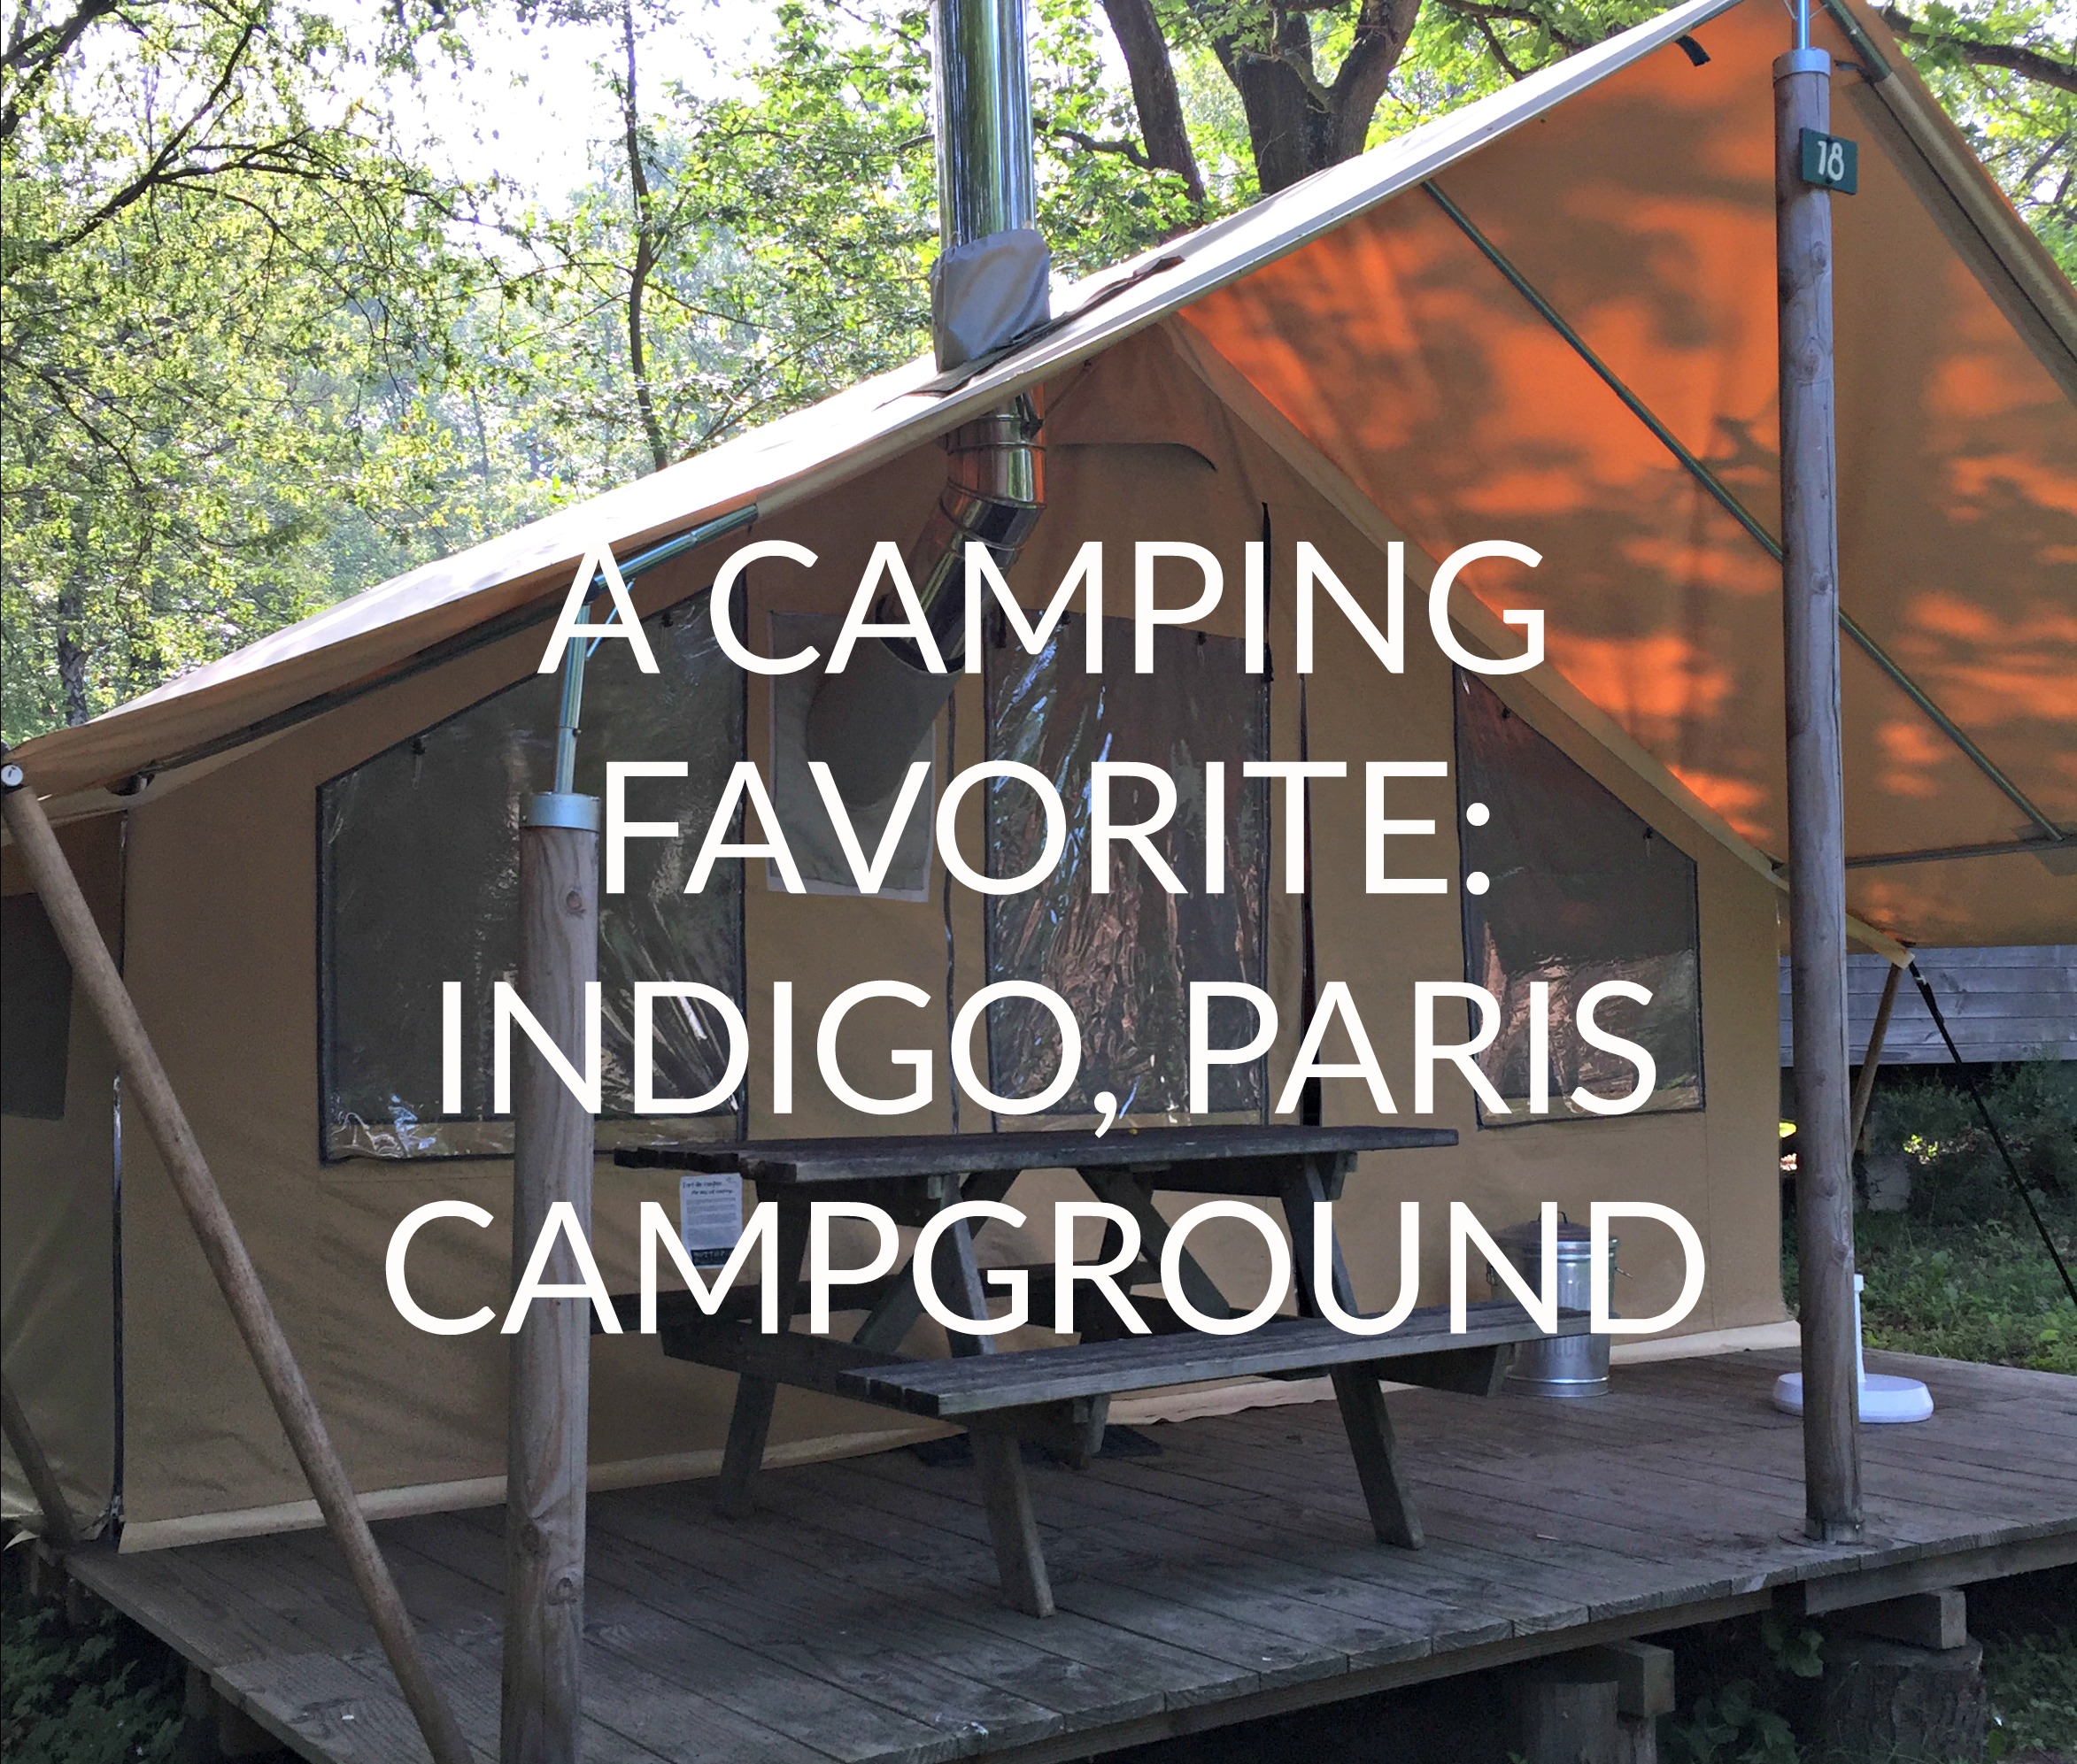 Paris Campground